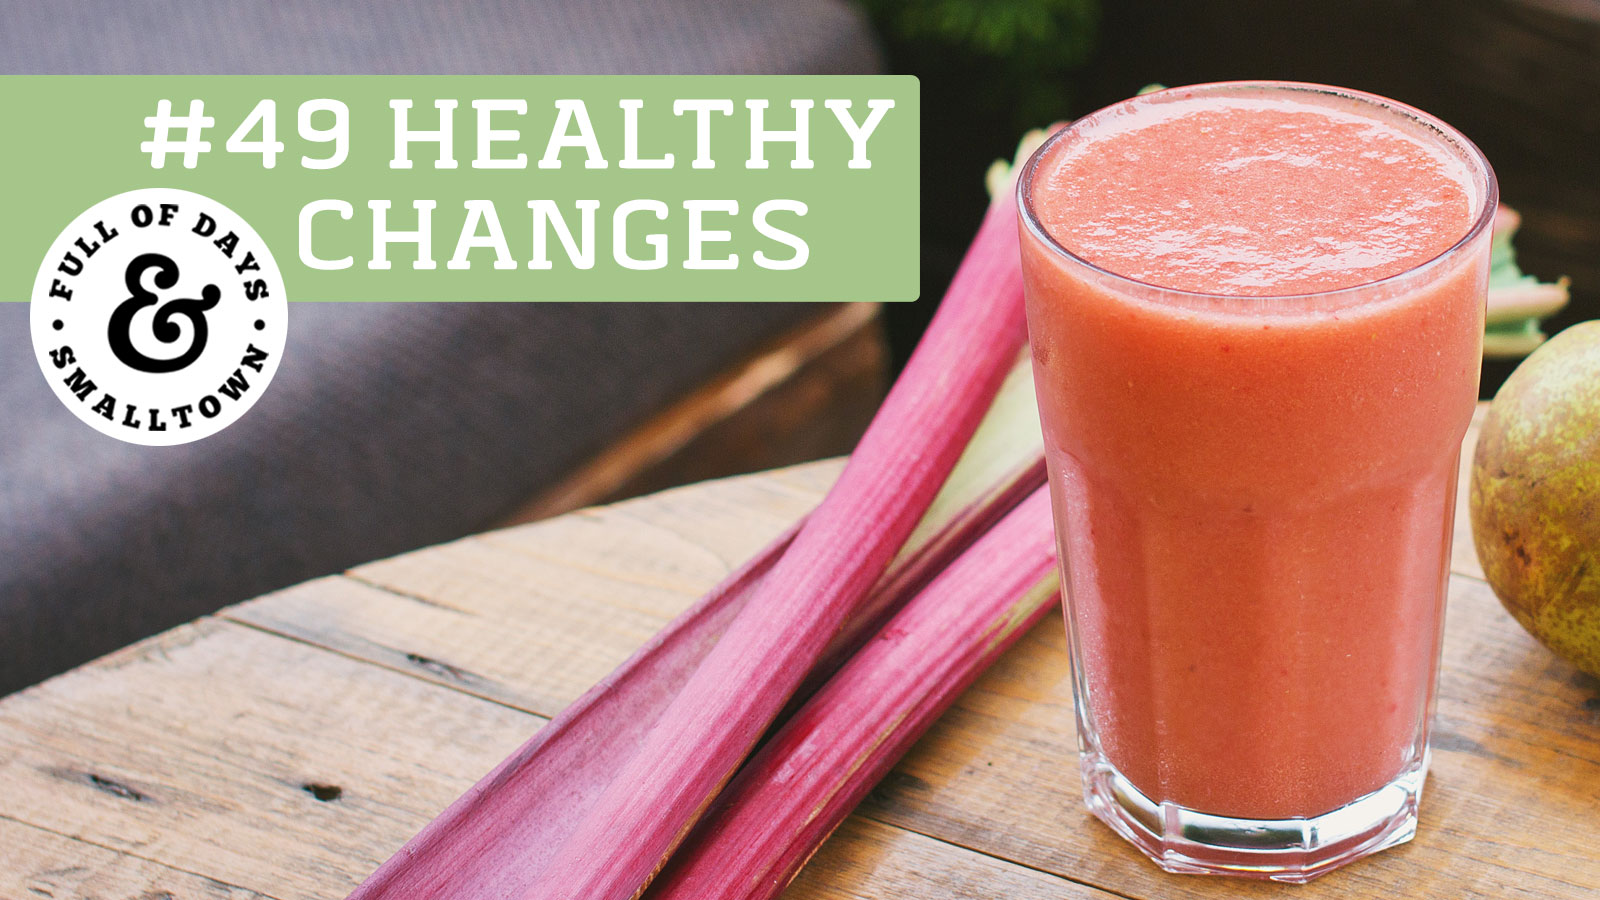 Healthy Changes 49 - To Cleanse Or Not